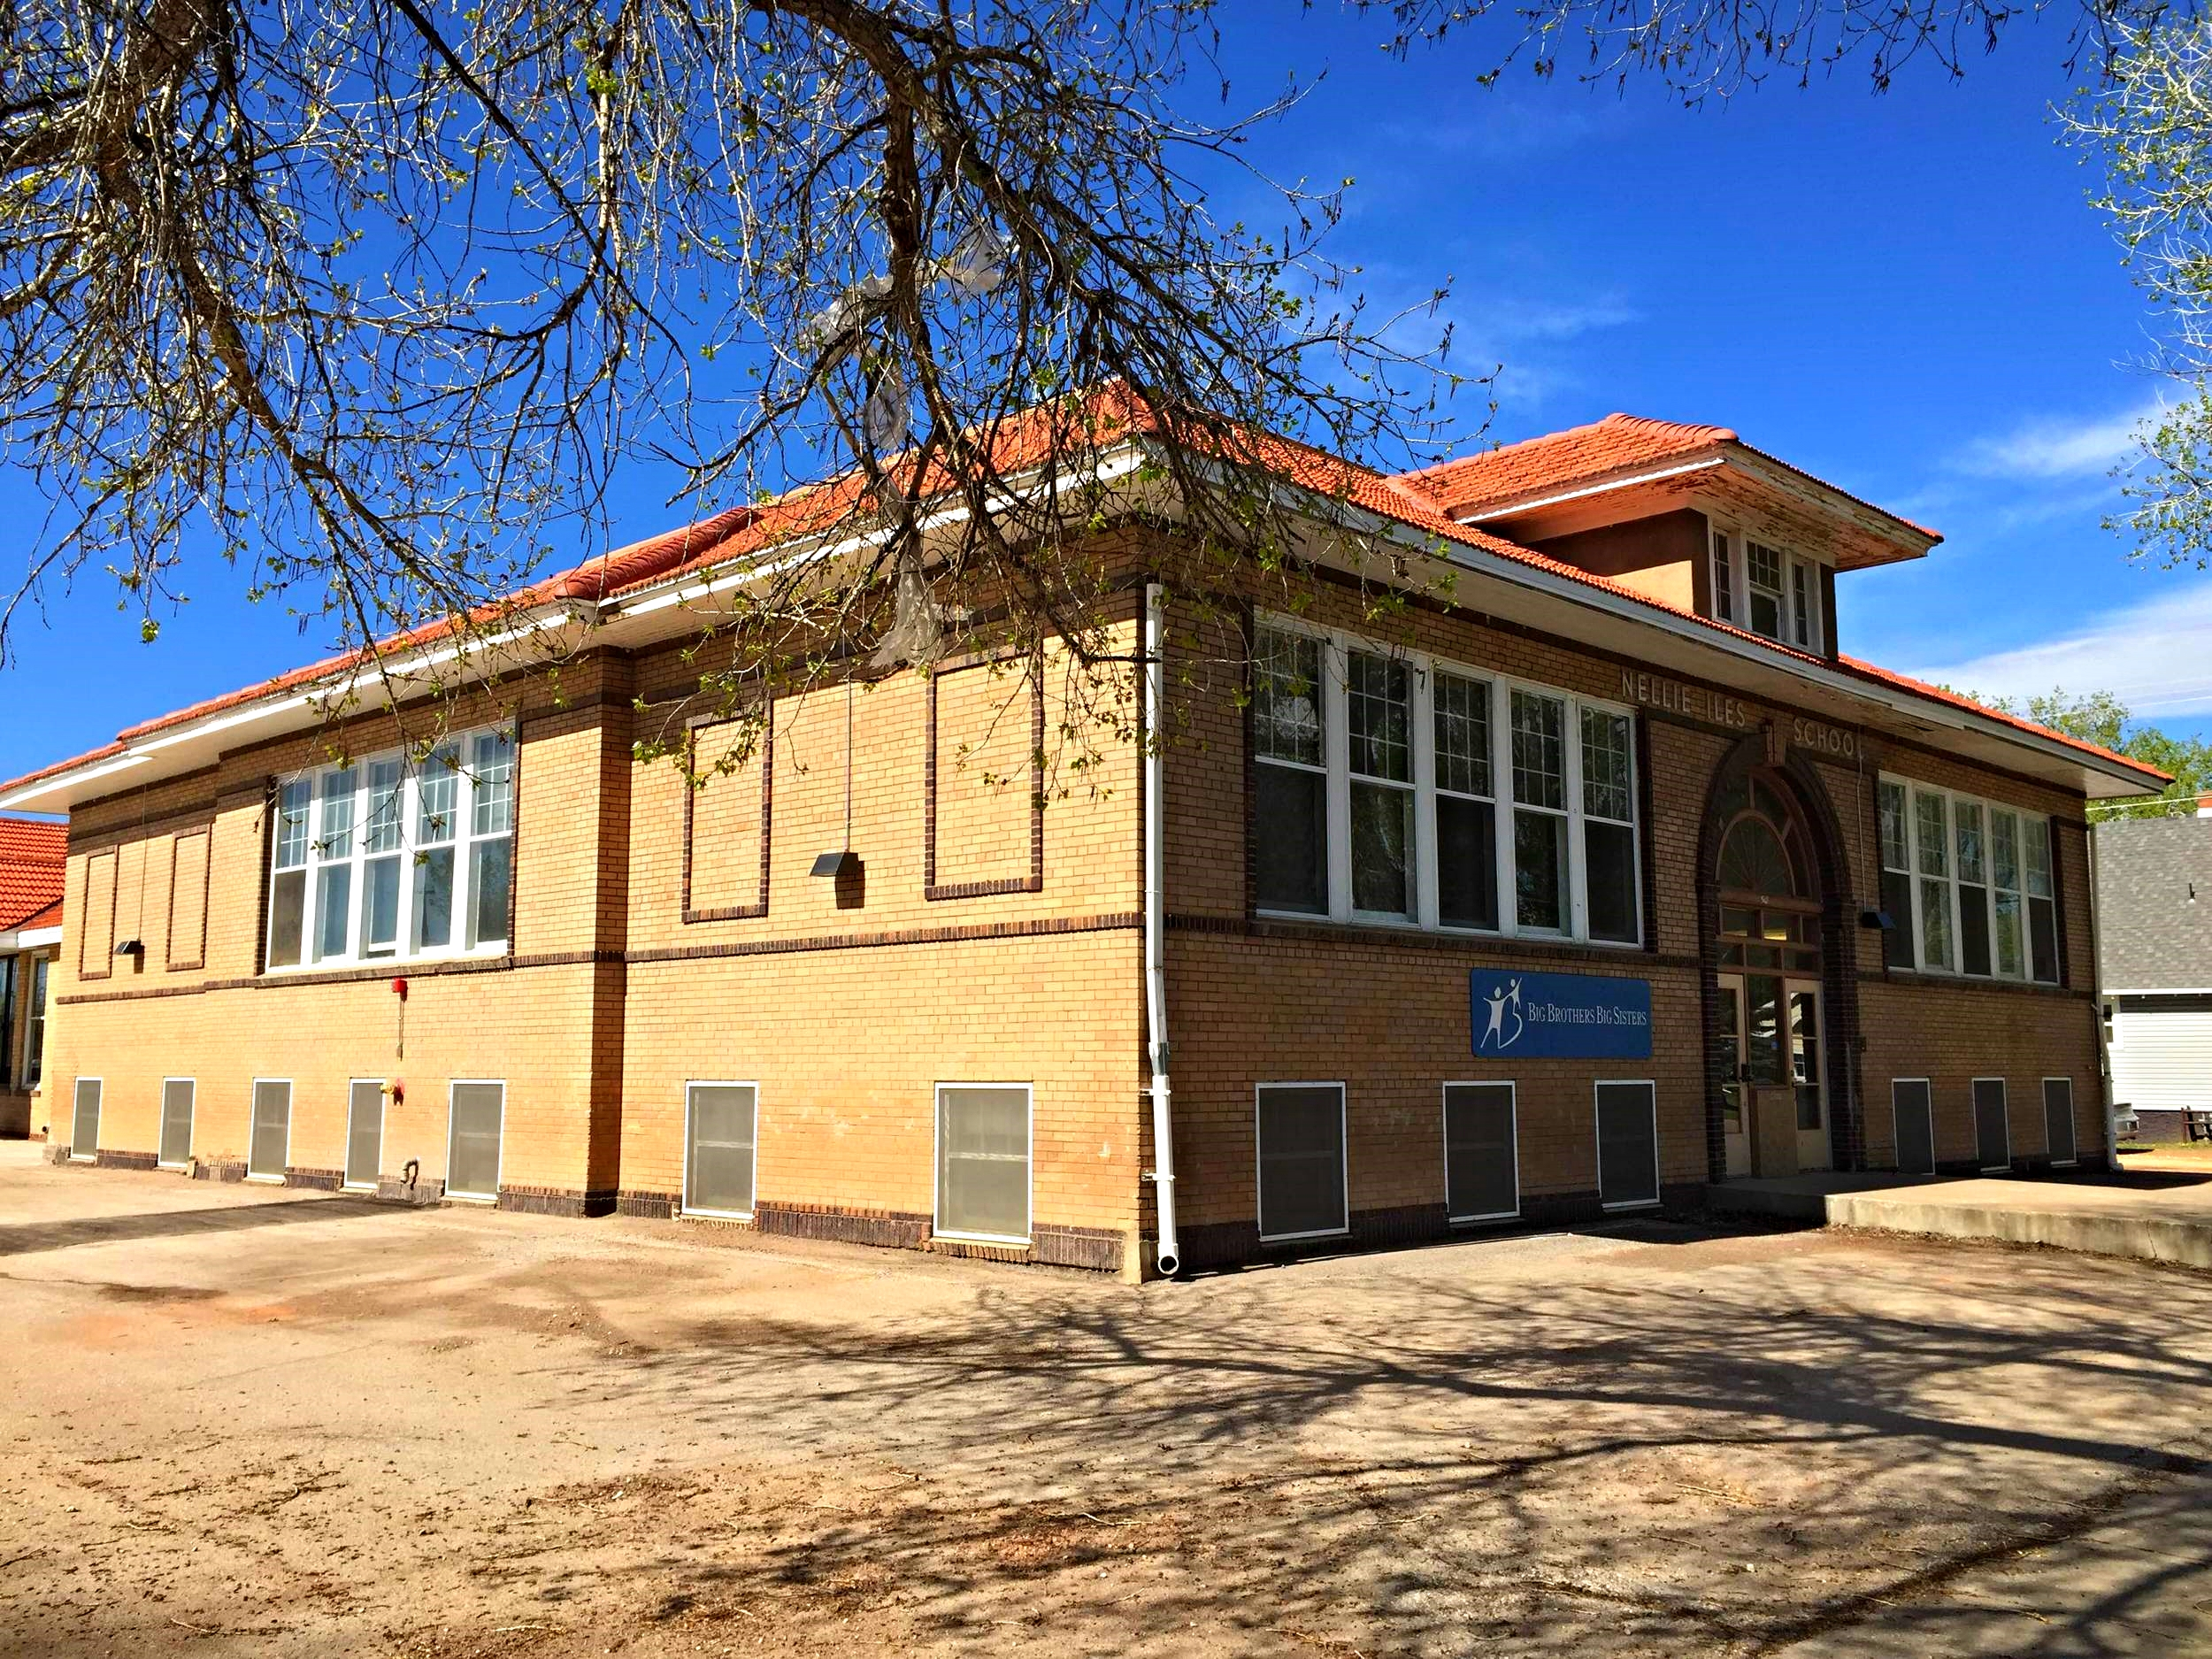 With its large, overhanging eaves and central front-facing dormer, Nellie Iles School looks just like an enlarged version of one of the surrounding houses.